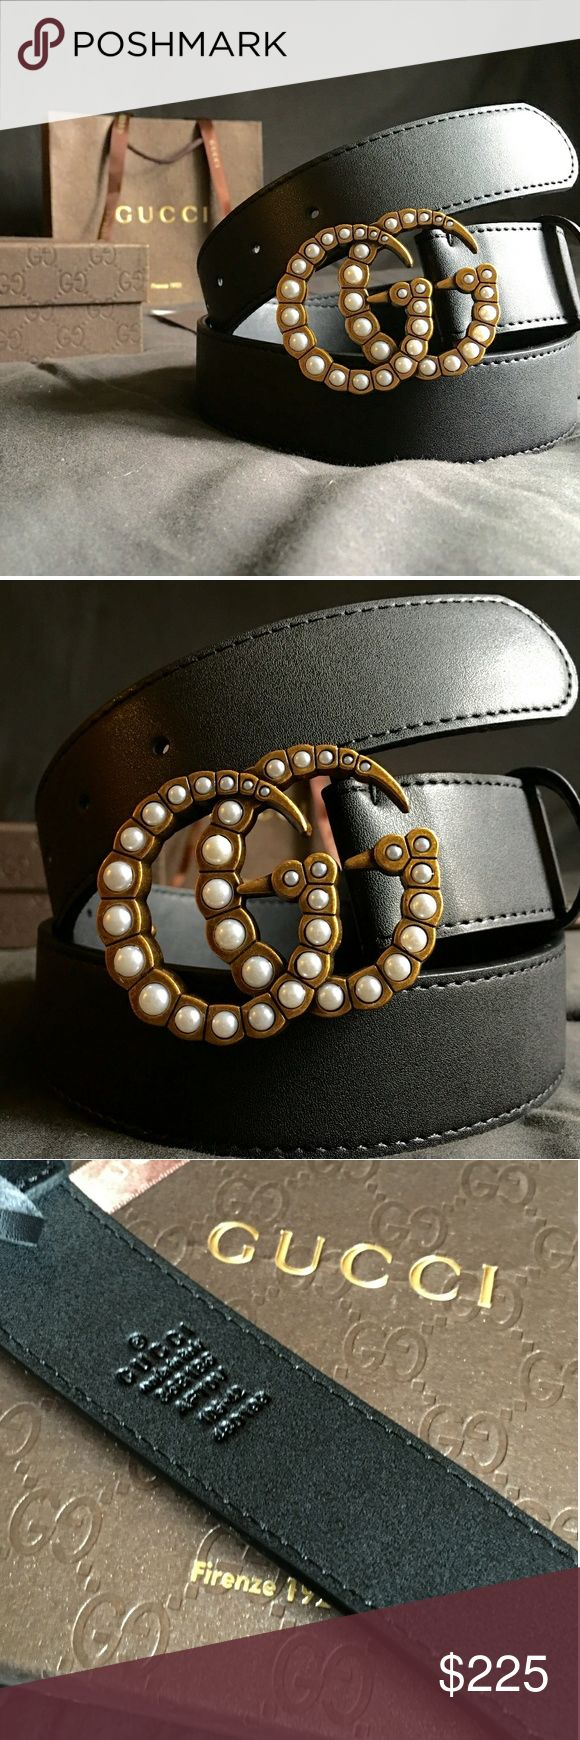 """Gucci Double G Belt!!! Gucci GG Belt W/Pearl & Antique Brass Double G Buckle!!!  Brand New!!!  Size Available - 28"""", 30"""", 32"""", 34"""", 36"""", 38"""", 40"""", 42""""!!!  Includes Gucci Belt, Gift Box, Dust Bag, Ribbon, Etc!!!  Great Gift Idea!!!  Last Available!!!  Check My Listings For Other Great Items!!!            Ignore: Gucci gg monogram casual dress belts men's women's guccissma leather gold silver web tiger bee embossed panther wool cable knit blooms supreme print angry cat ufo dragon studded snake…"""